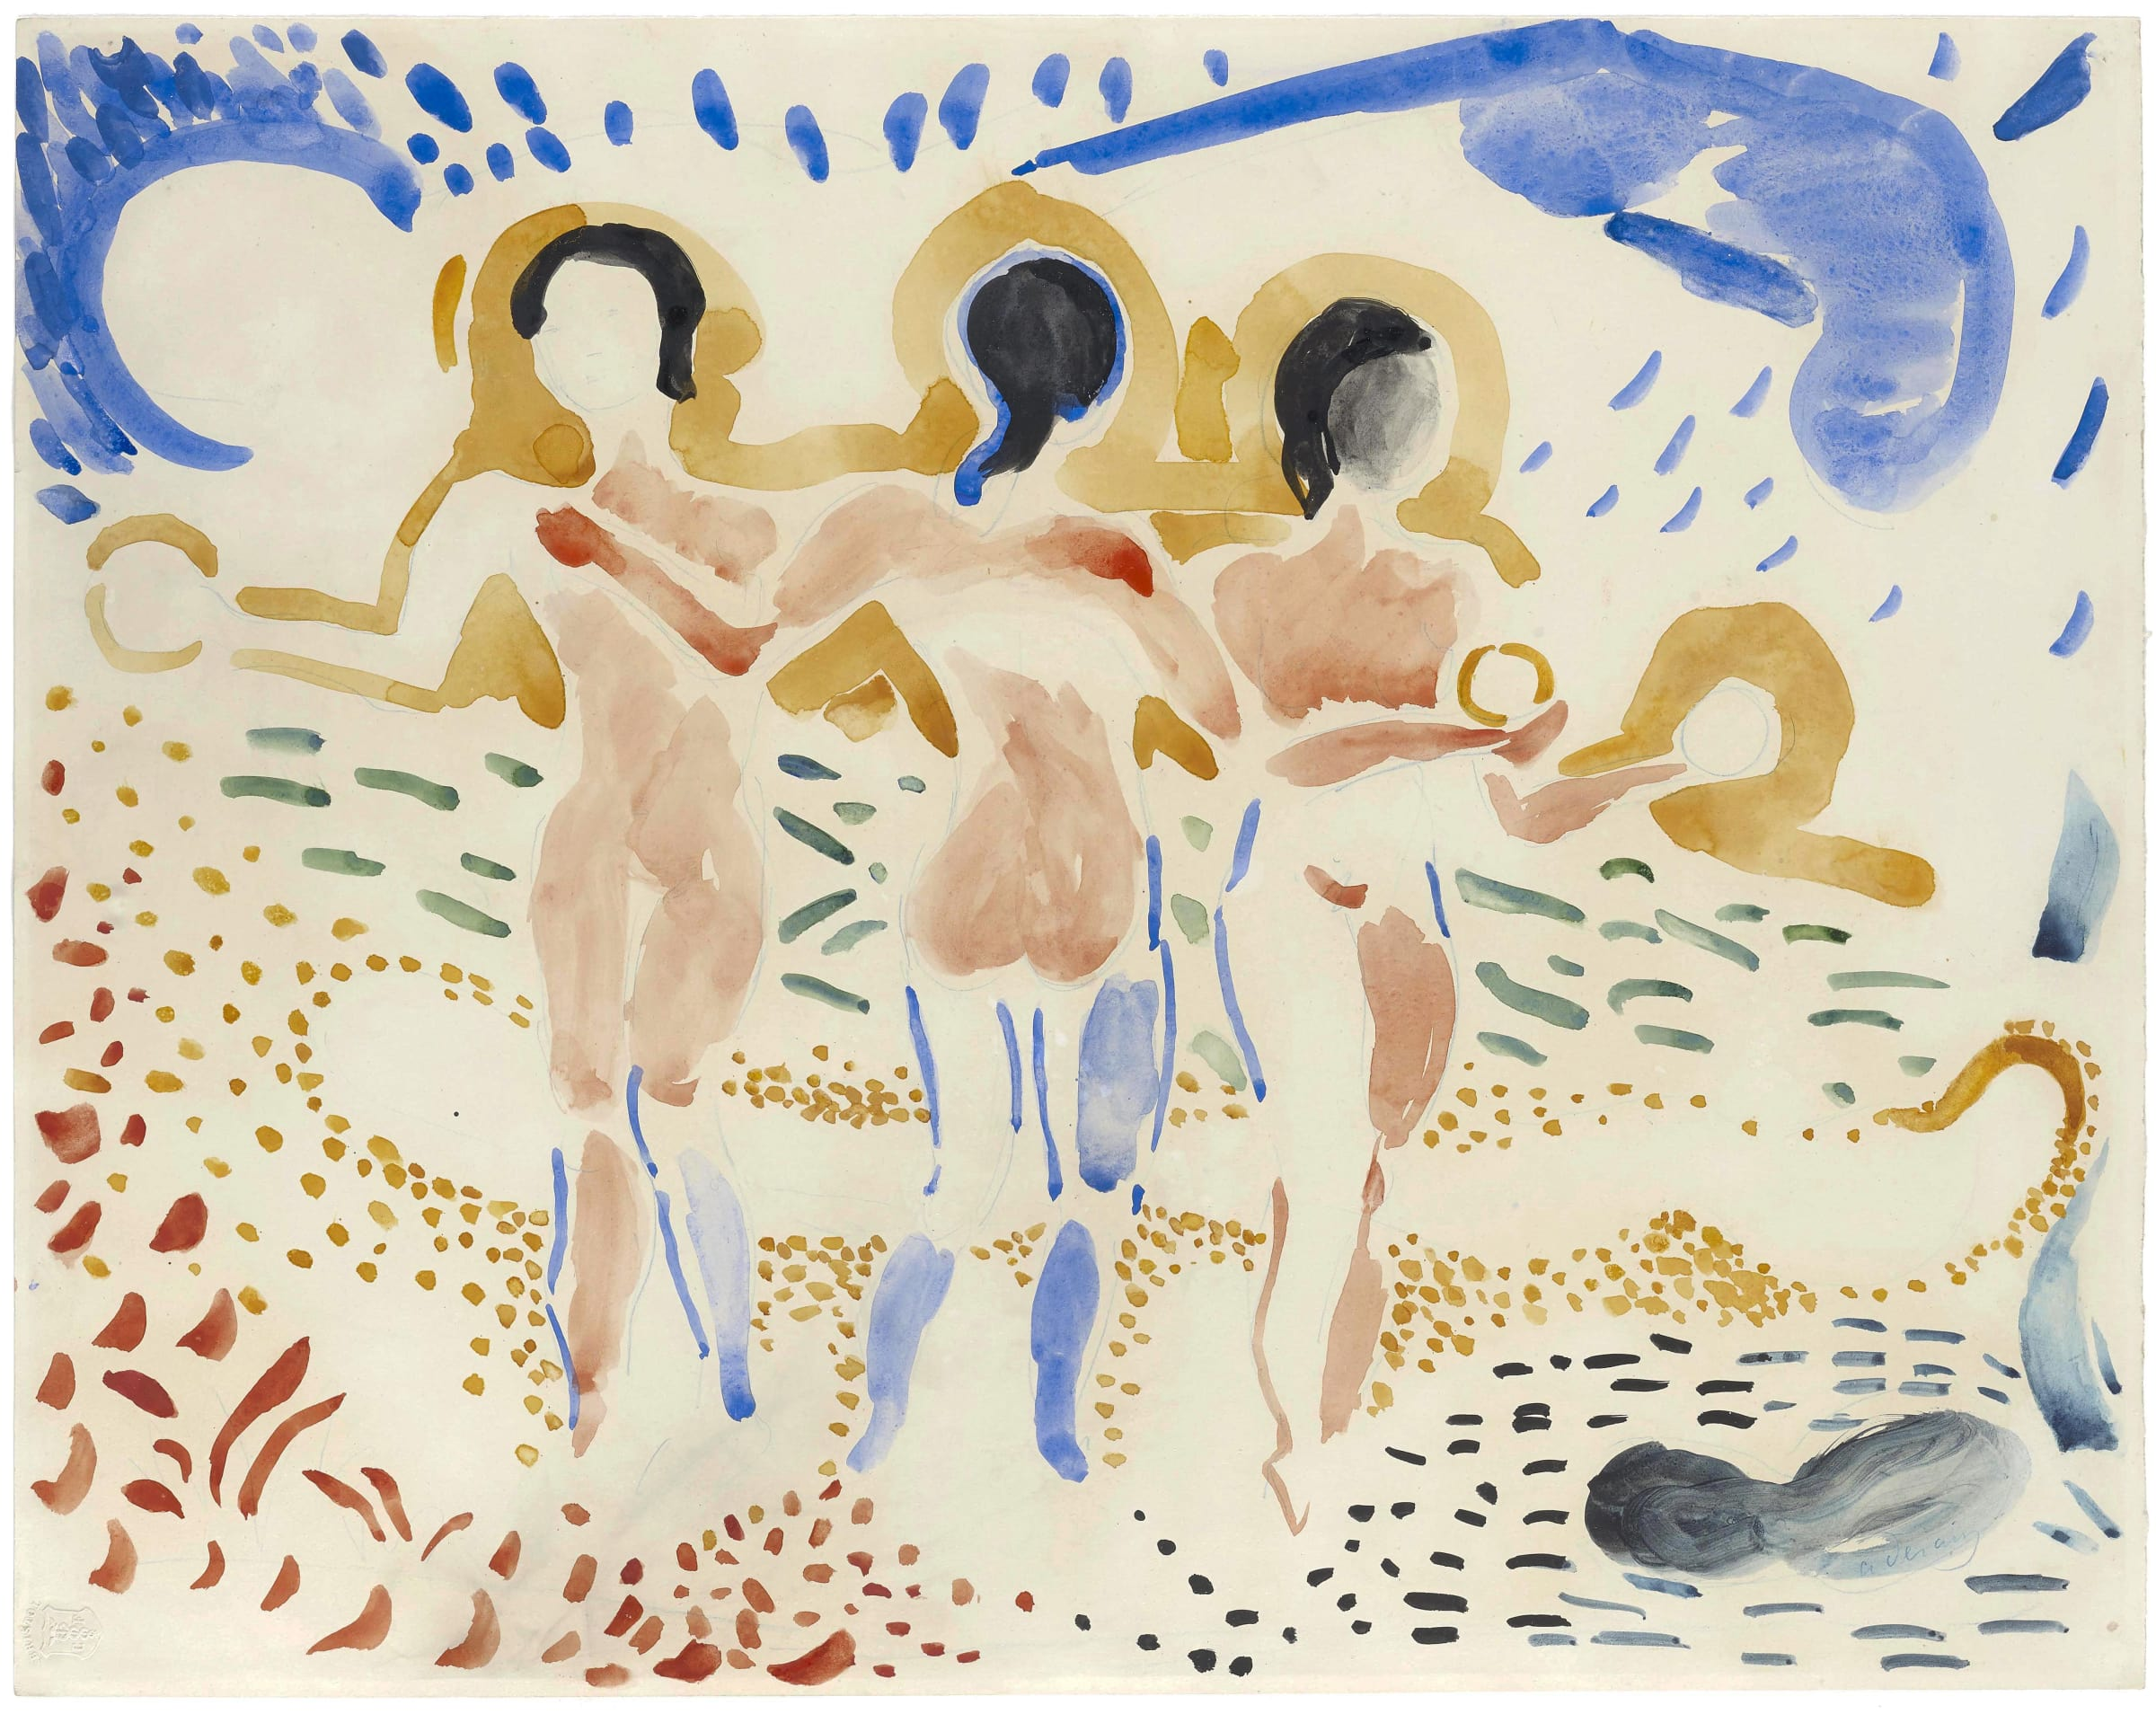 <span class=&#34;link fancybox-details-link&#34;><a href=&#34;/exhibitions/6/works/artworks_standalone9388/&#34;>View Detail Page</a></span><div class=&#34;signed_and_dated&#34;>Signed lower right a.derain Watermark Bristol lower left</div>